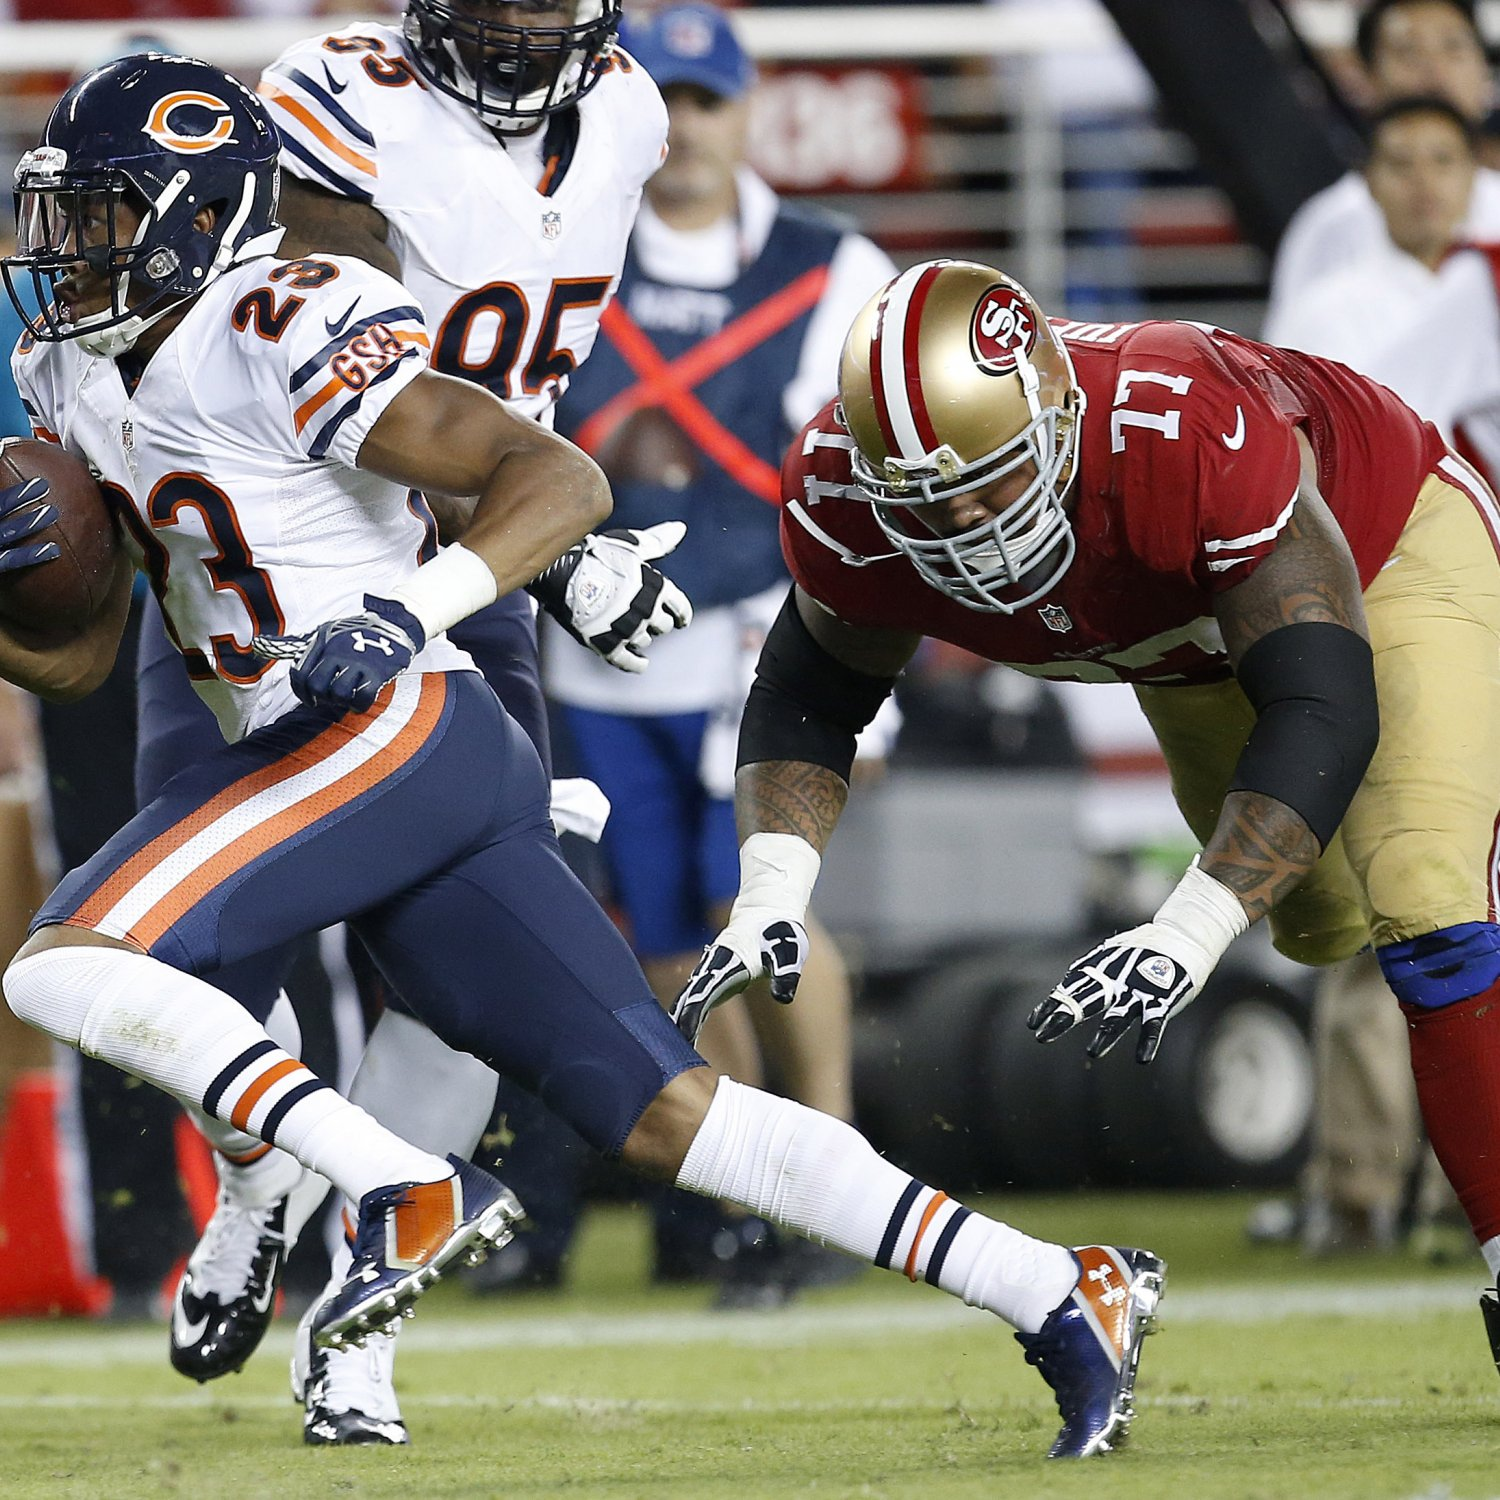 Bears Vs. 49ers: Live Score And Analysis For San Francisco